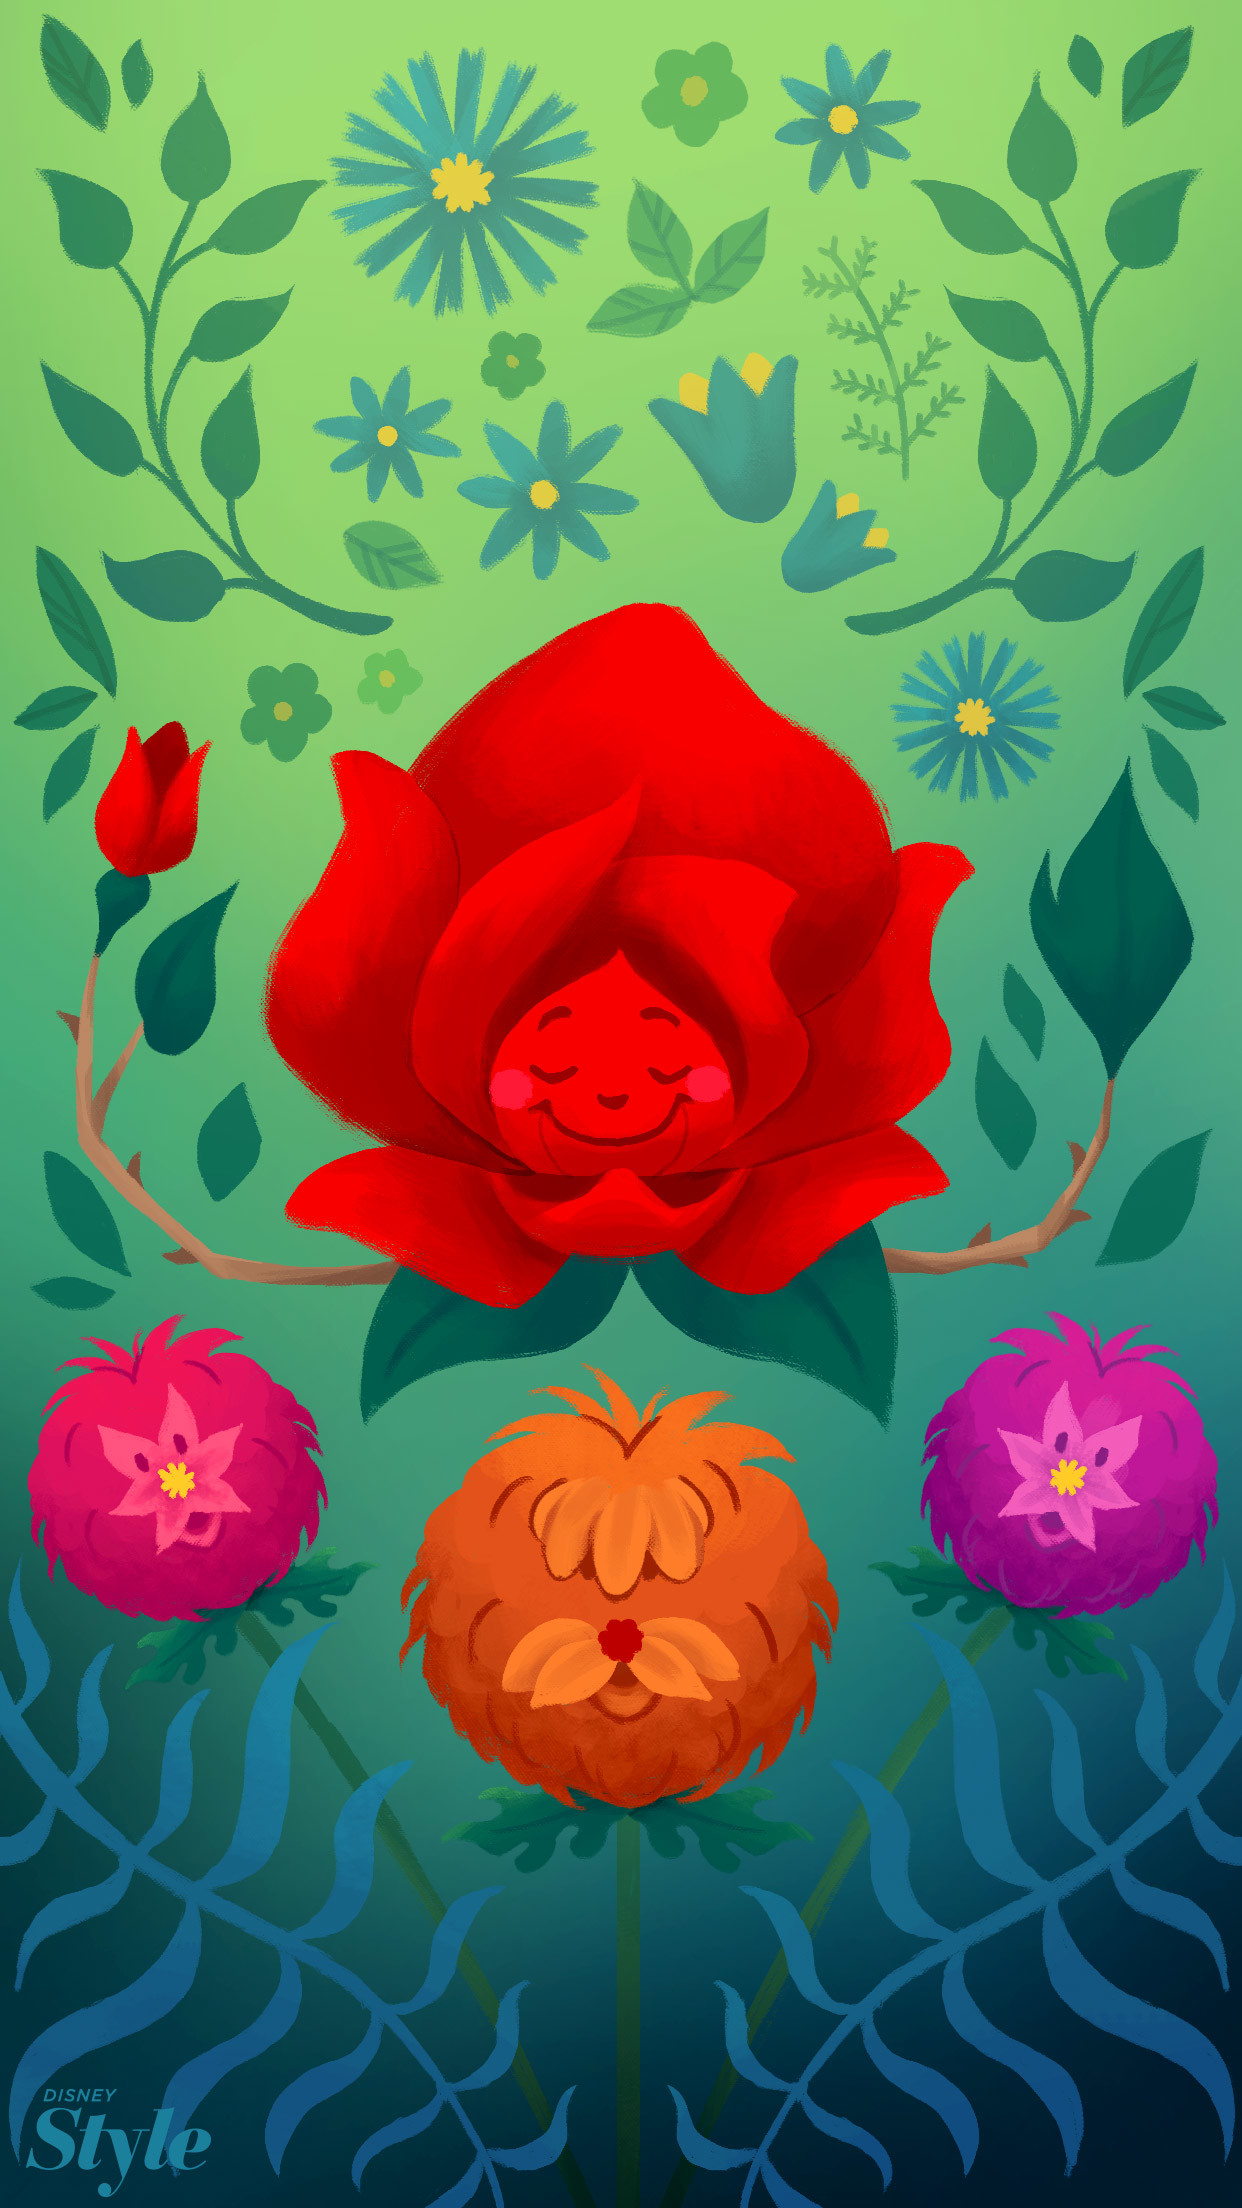 Spring Disney Backgrounds To Brighten Up Your Phone   Lifestyle   Disney  Style